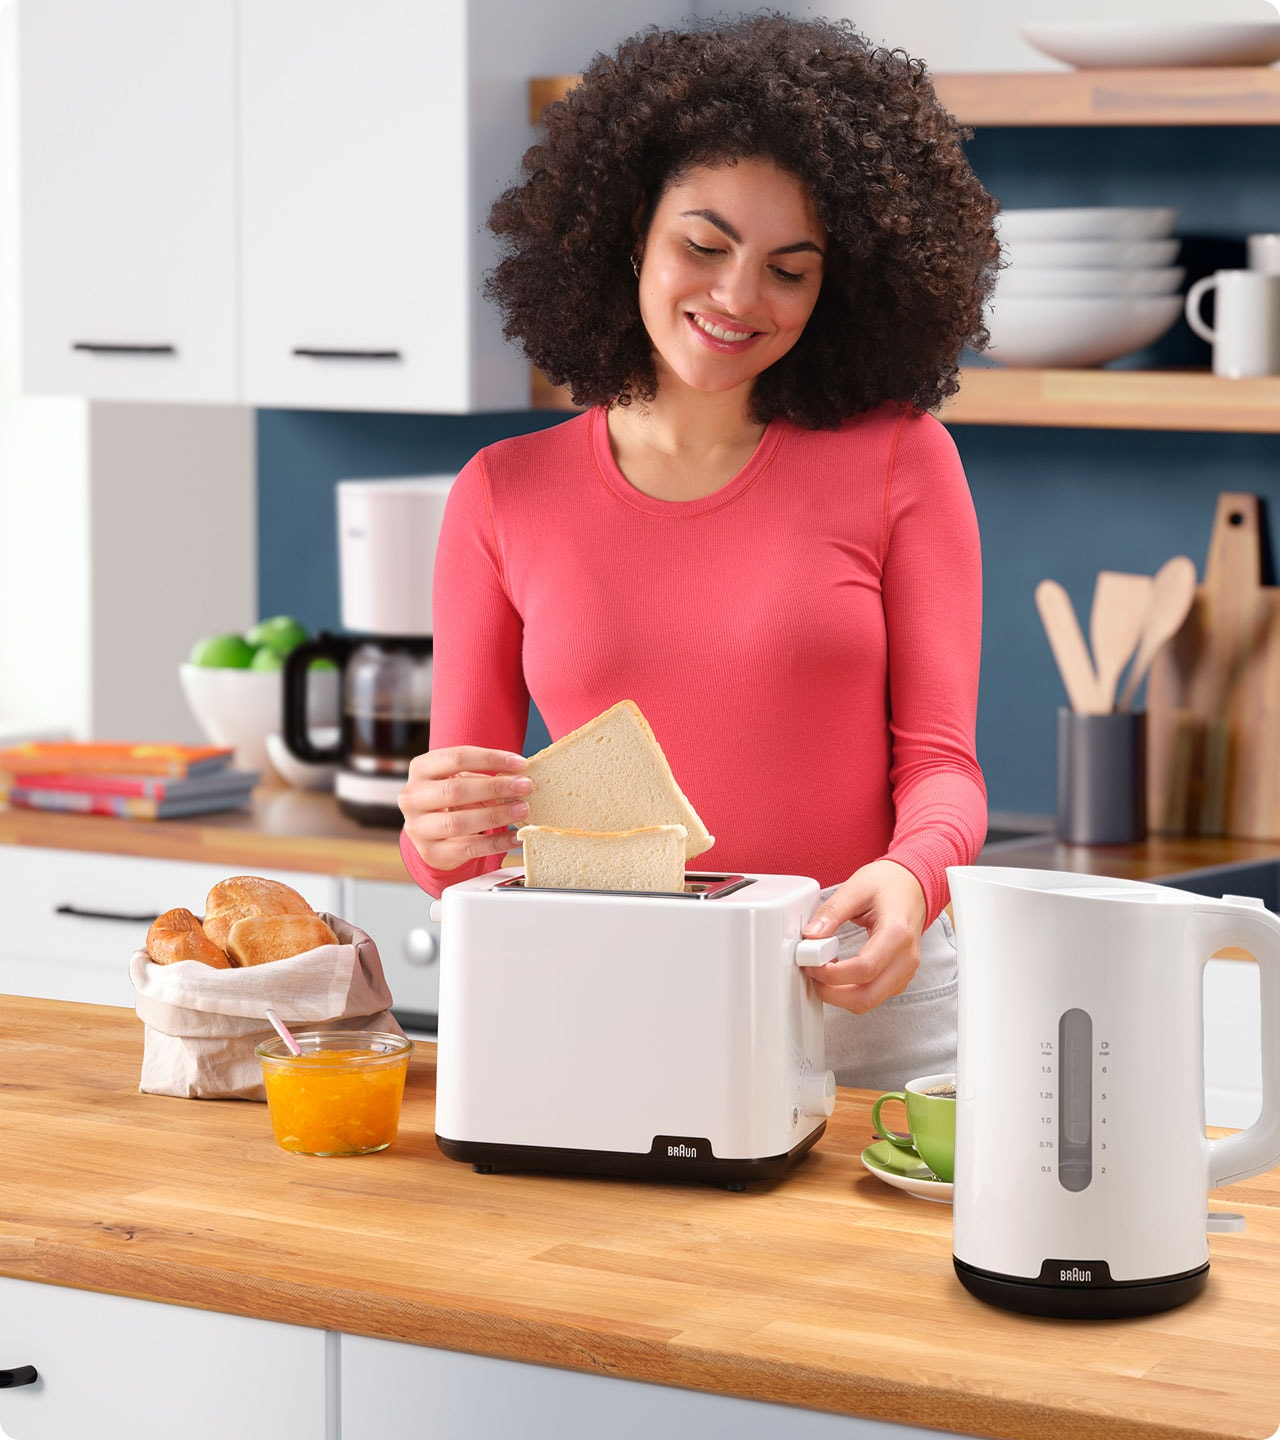 Braun Breakfast Series 1 Toaster HT 1010 WH in use